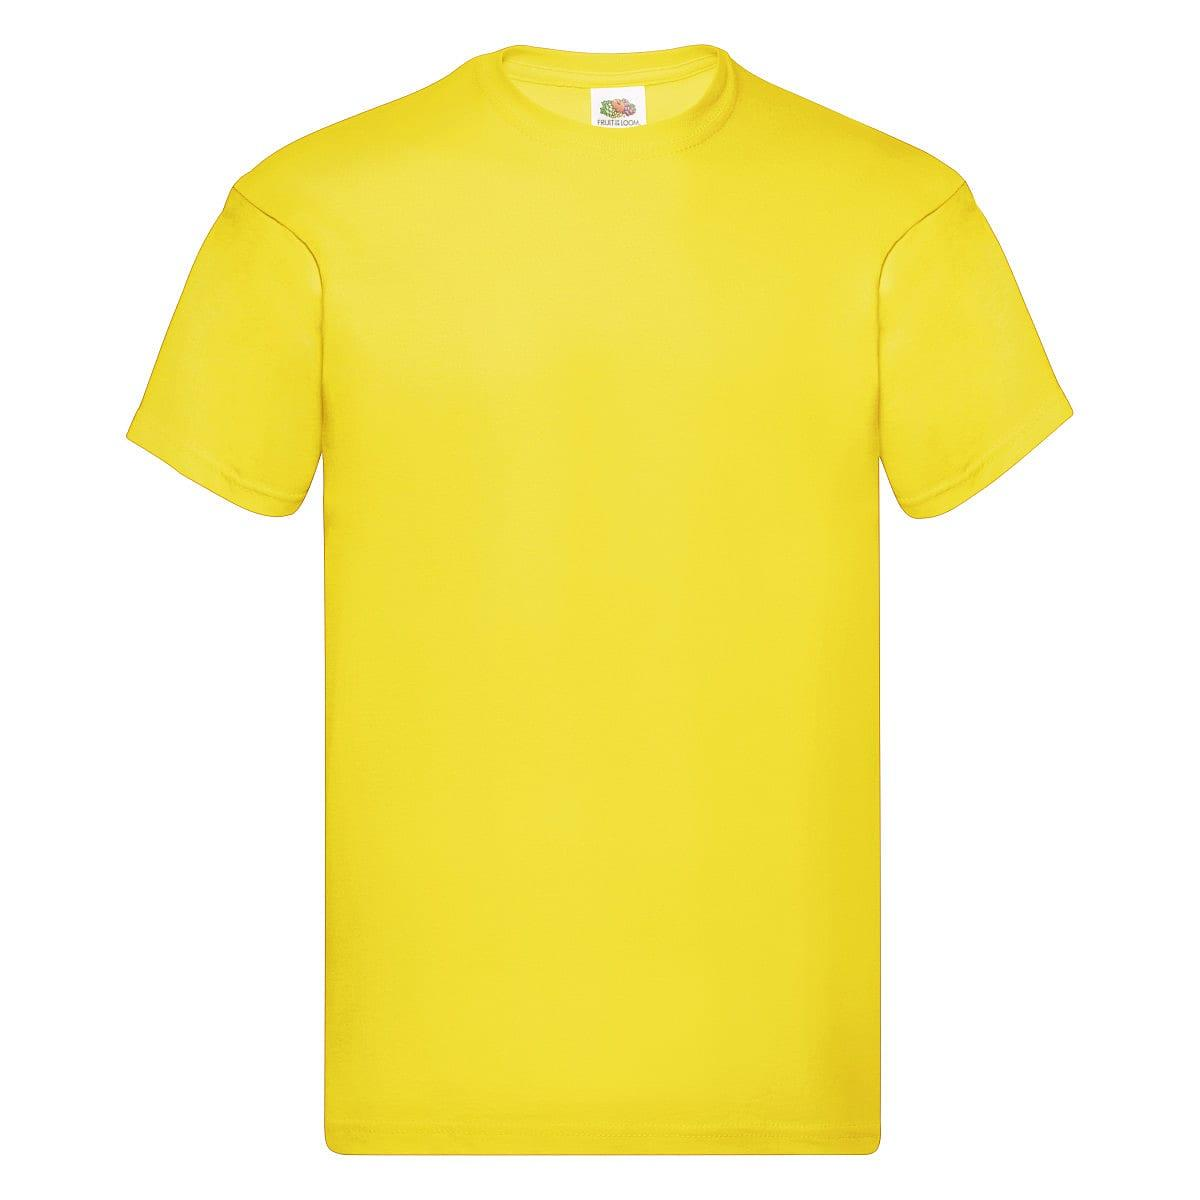 Fruit Of The Loom Original Full Cut T-Shirt in Yellow (Product Code: 61082)